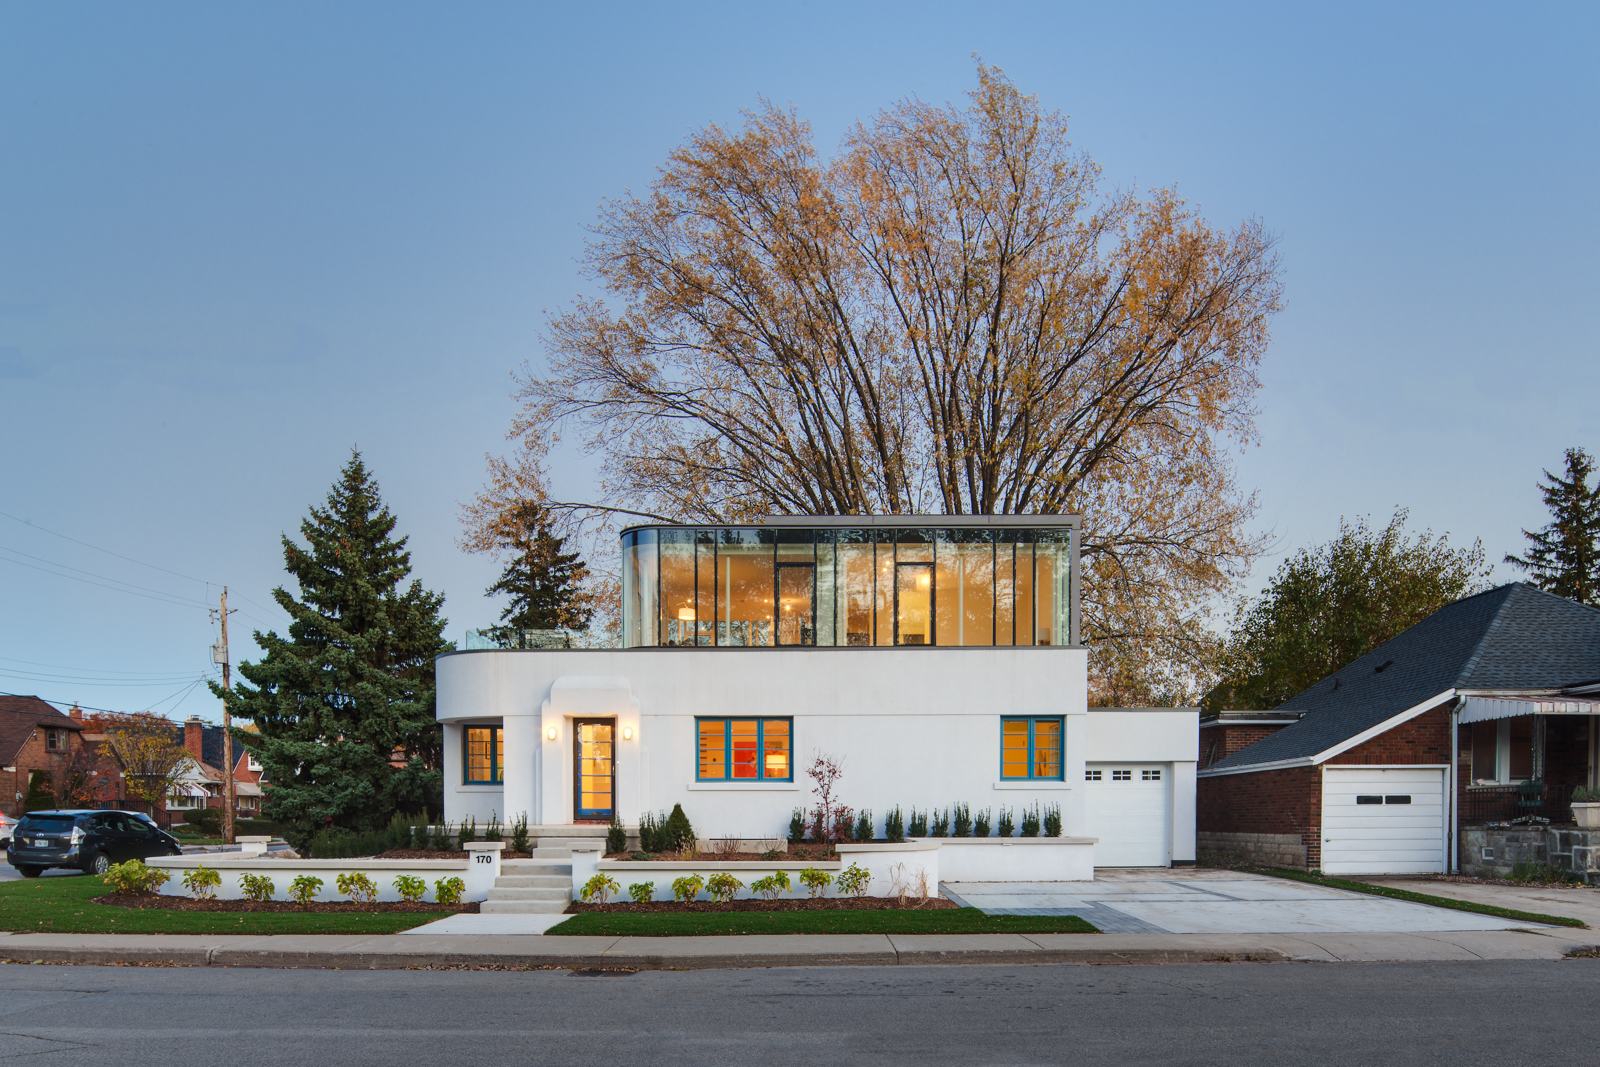 A Restored Heritage Home With Art Moderne Architecture | iDesignArch ...